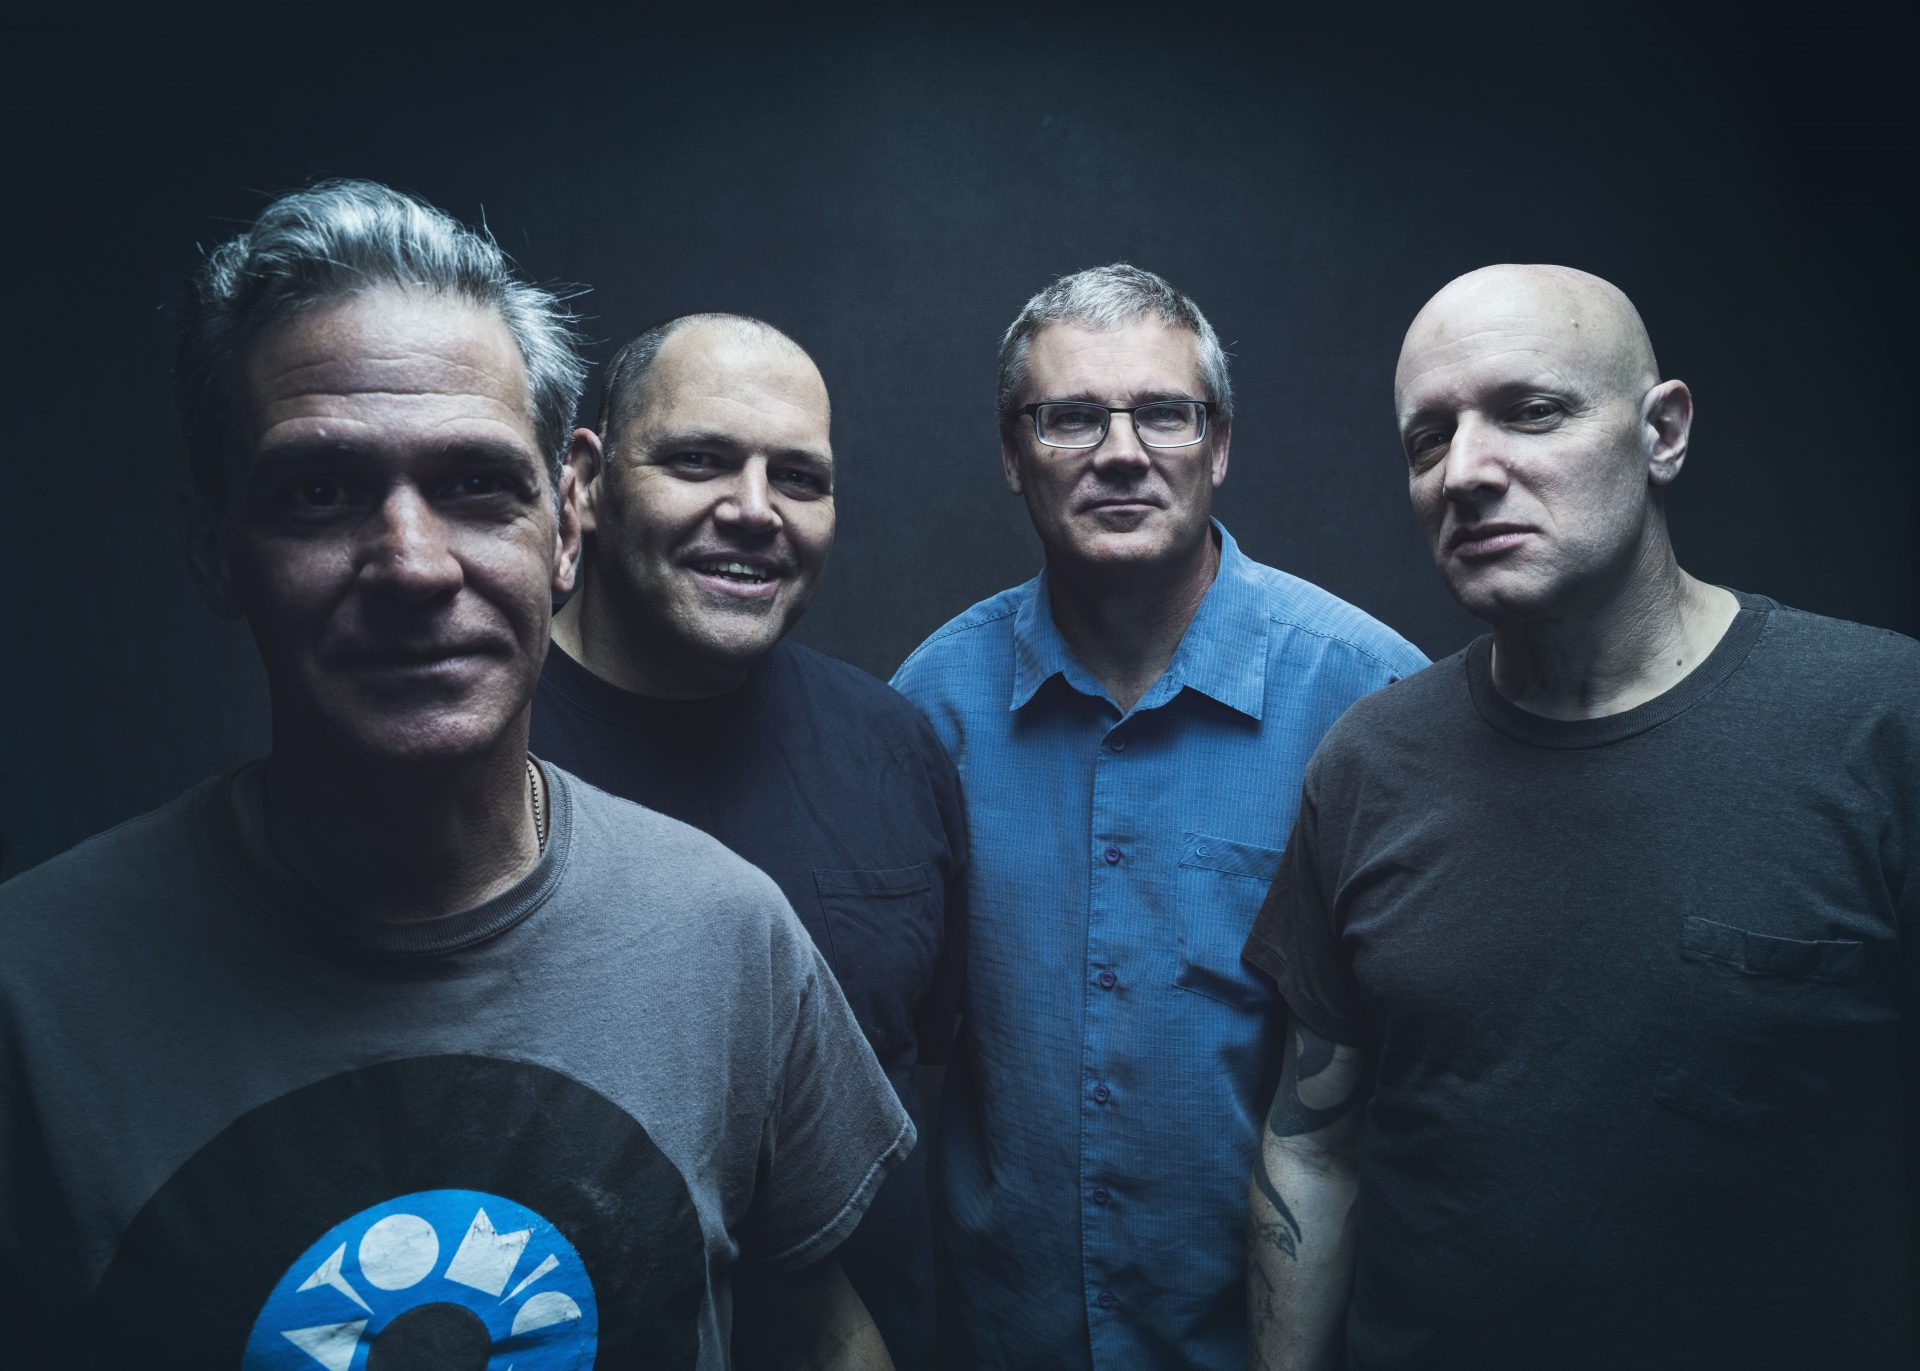 Descendents to make long-awaited NYC return on Oct. 8 at PlayStation Theater, Milo talks to Downtown